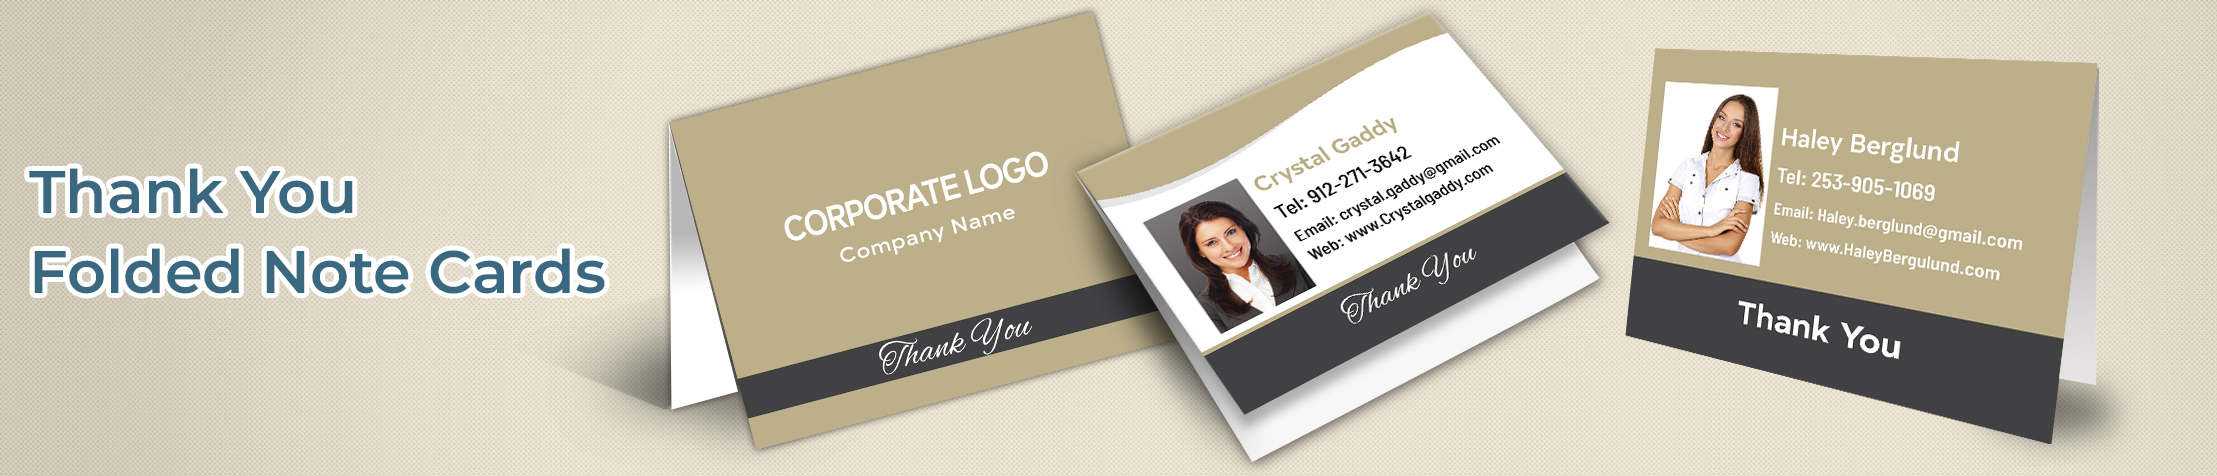 Century 21 Real Estate Thank You Folded Note Cards - Century 21  thank you cards stationery | BestPrintBuy.com